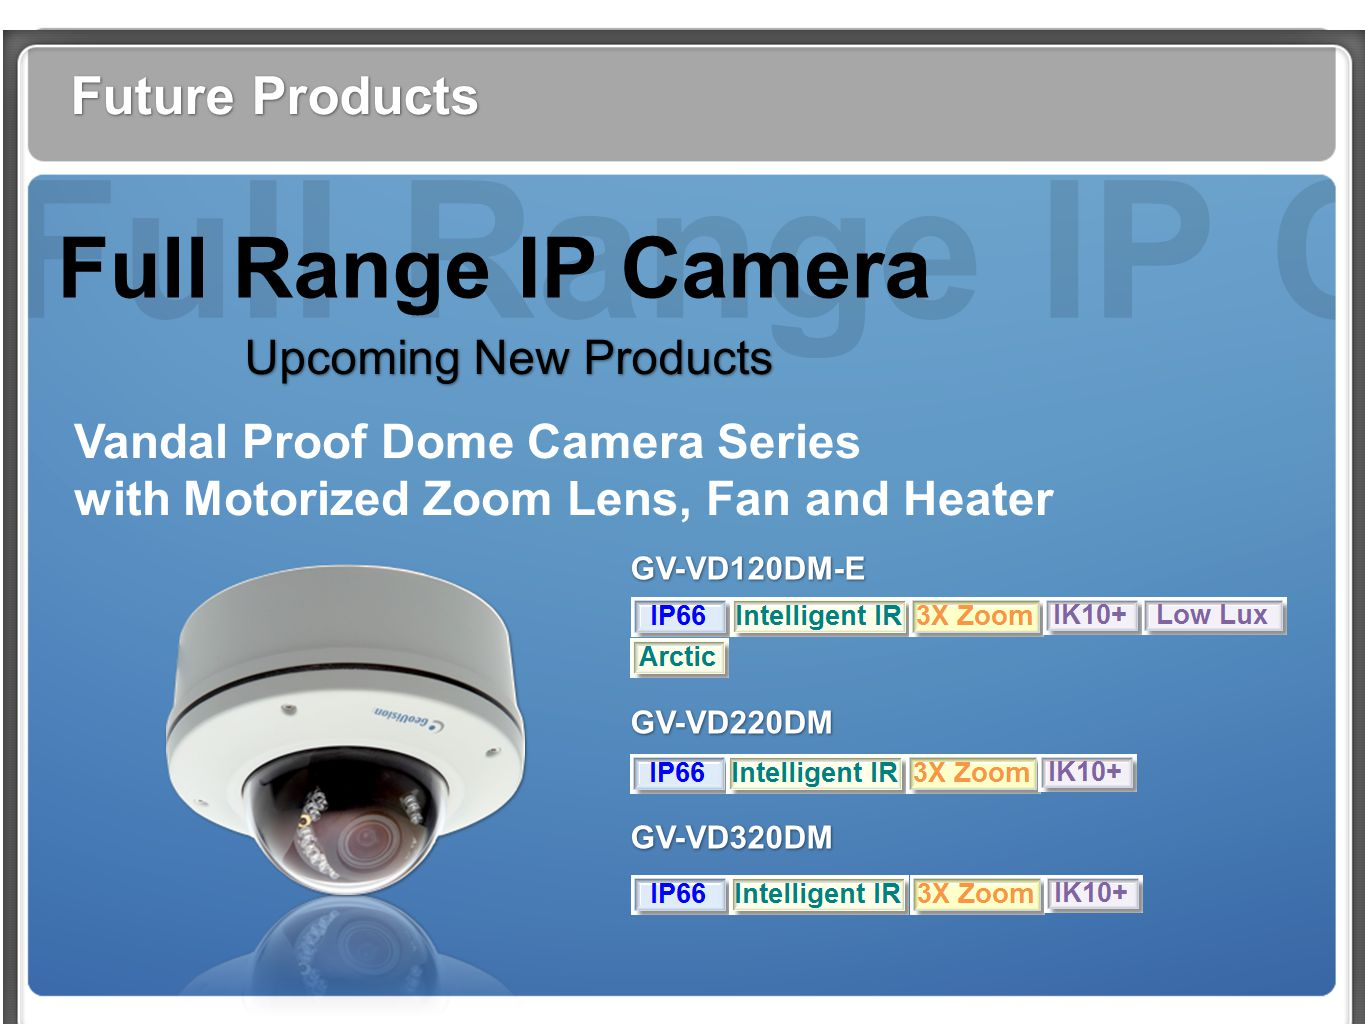 Full Range IP Cam Future Products Full Range IP Camera Upcoming New Products Vandal Proof Dome Camera Series with Motorized Zoom Lens, Fan and Heater GV-VD120DM-E GV-VD220DM GV-VD320DM GV-VD120DM-E GV-VD220DM GV-VD320DM